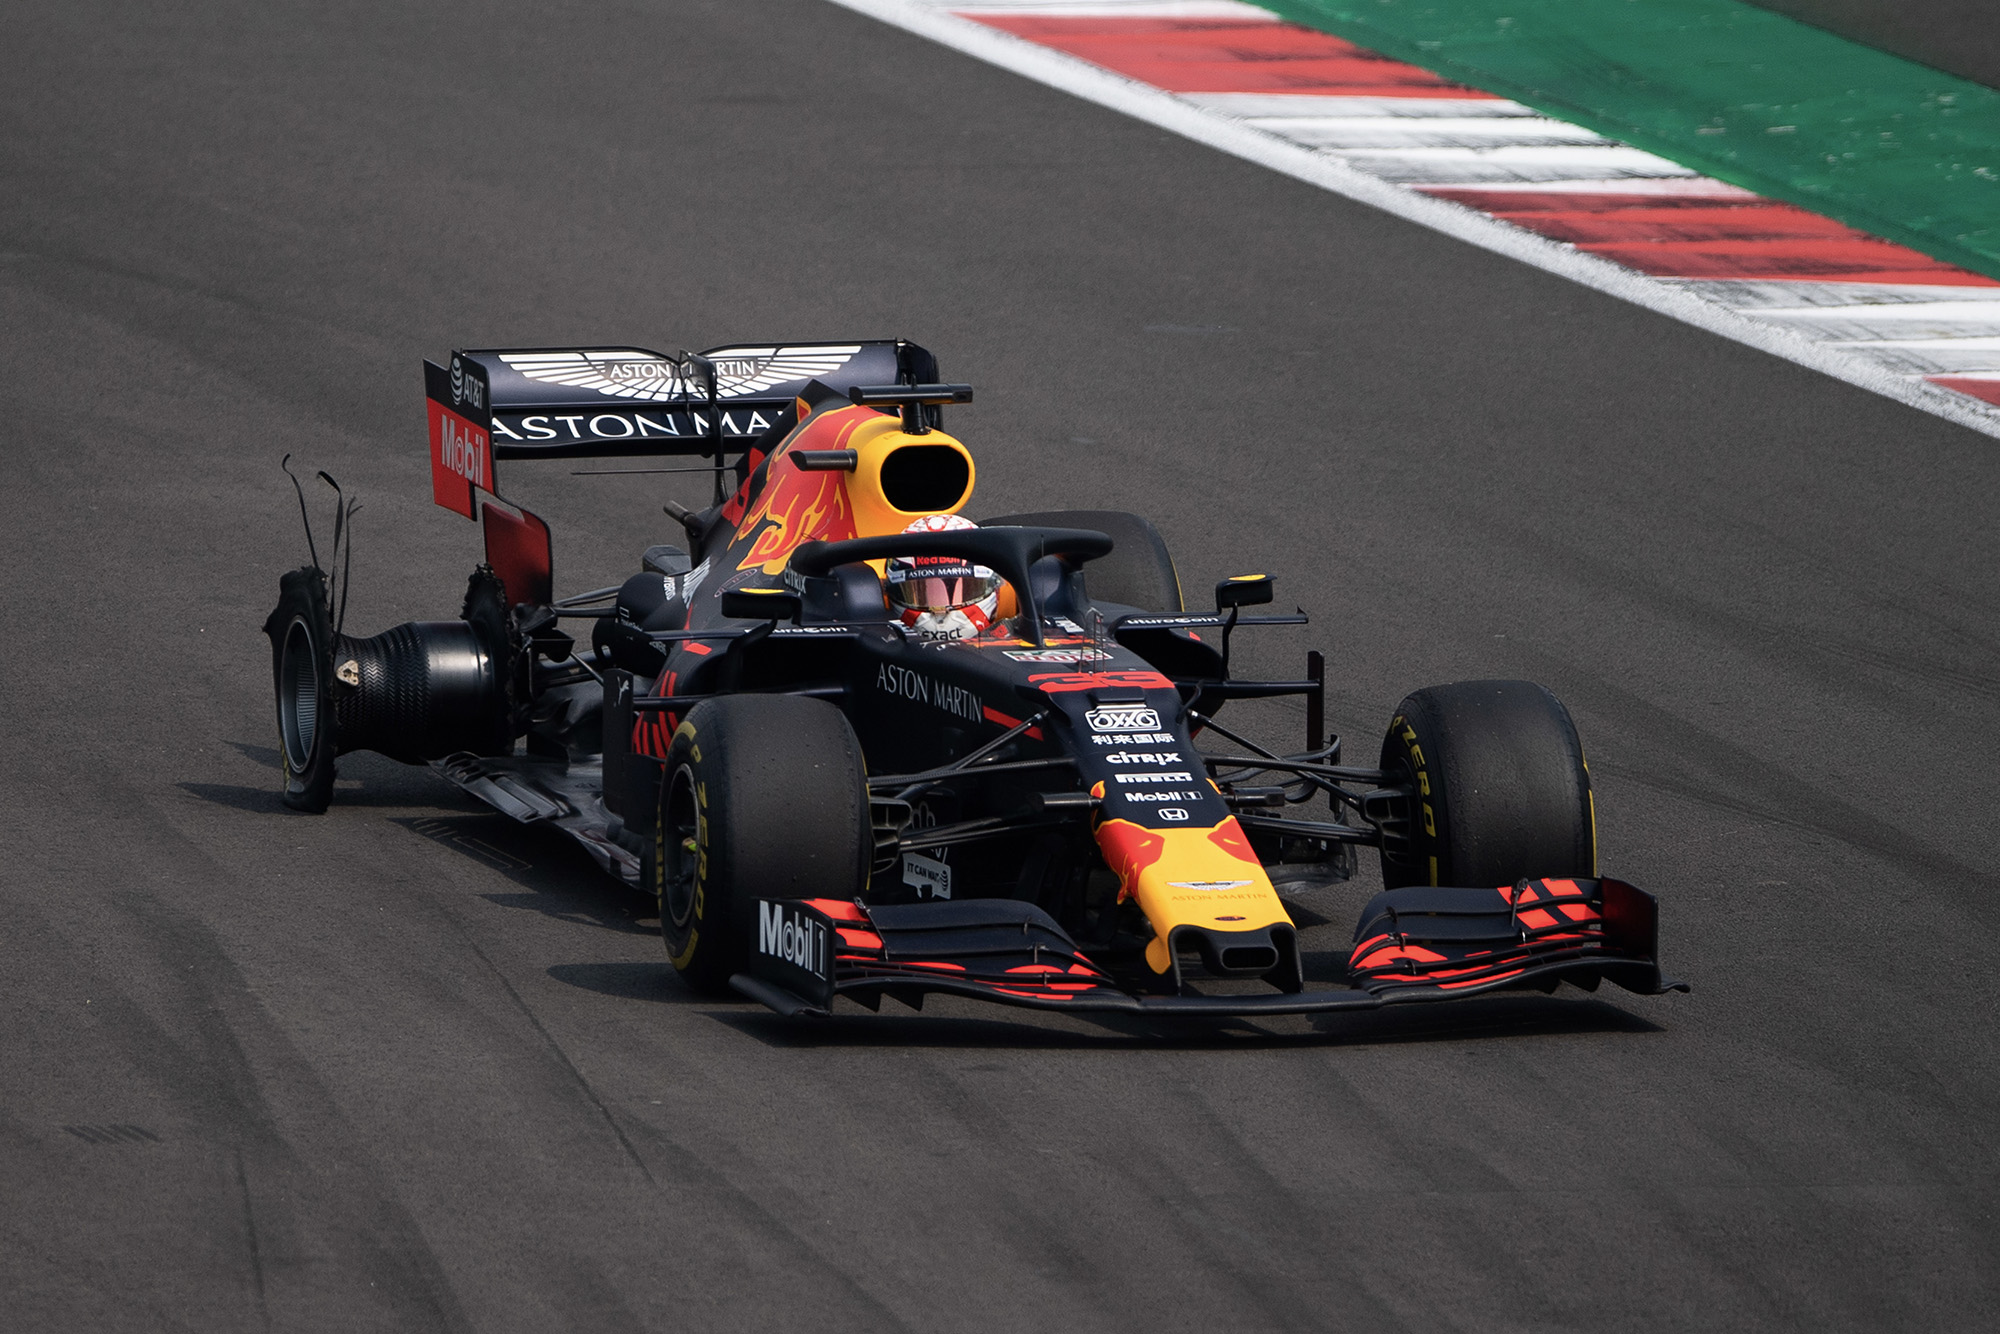 Max Verstappen's Red bull with destroyed right rear tyre after a puncture at the 2019 F1 Mexican Grand Prix